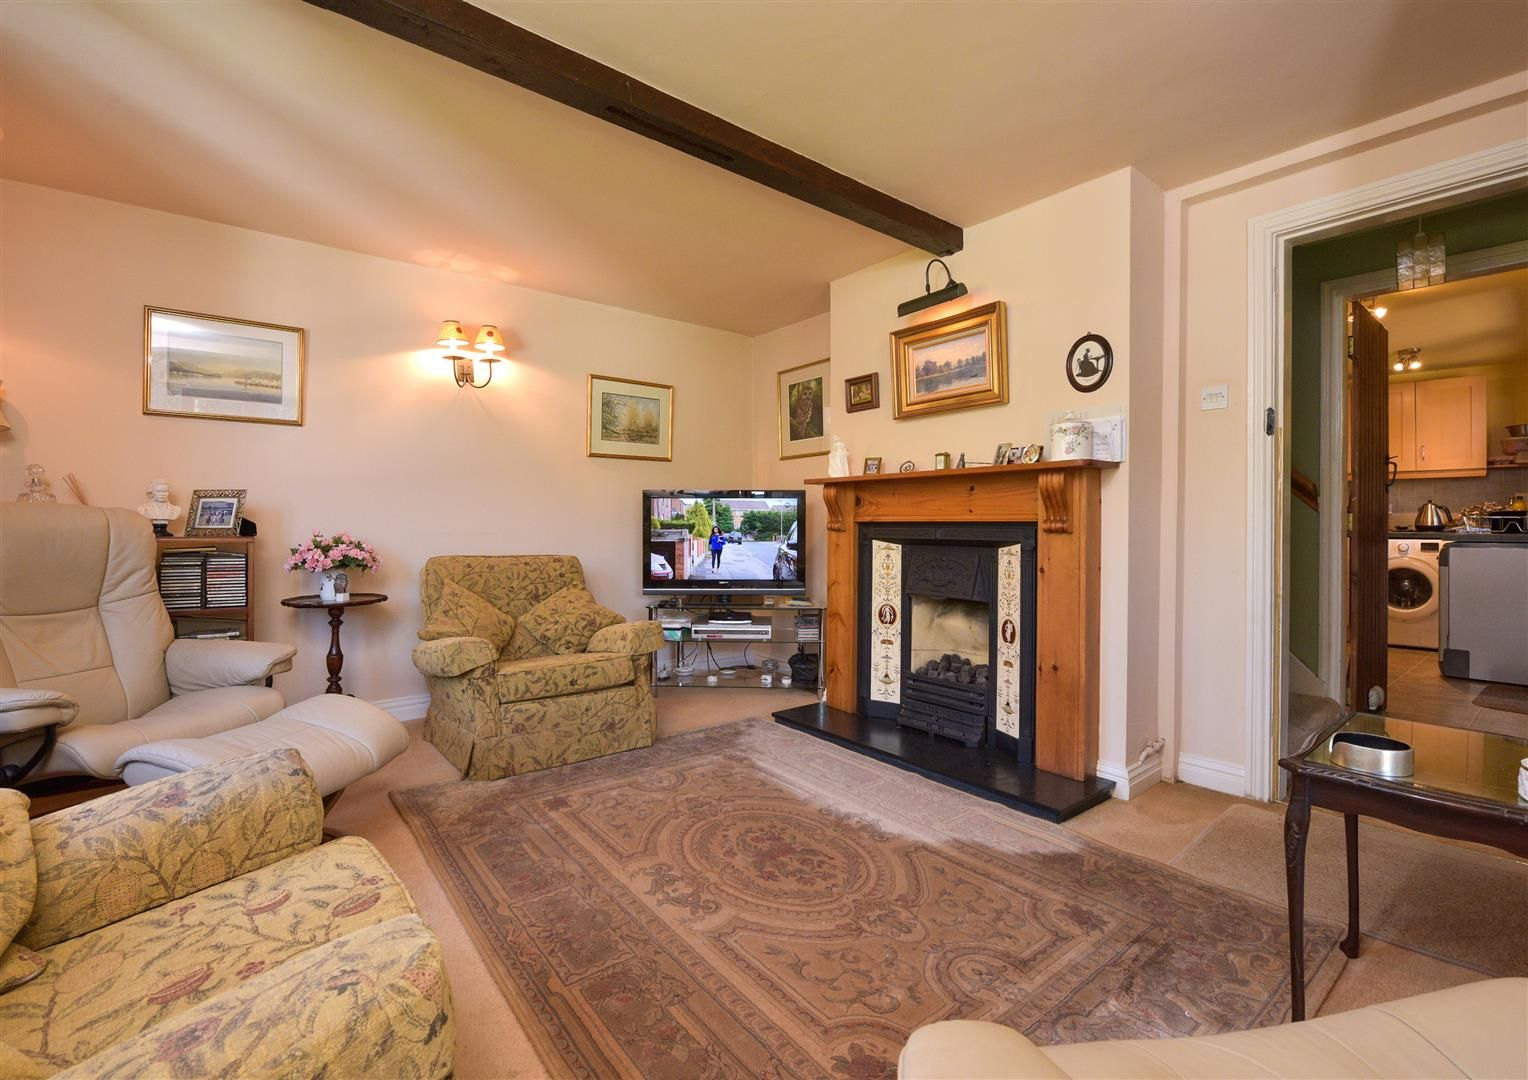 2 bed semi-detached for sale in Clent 4